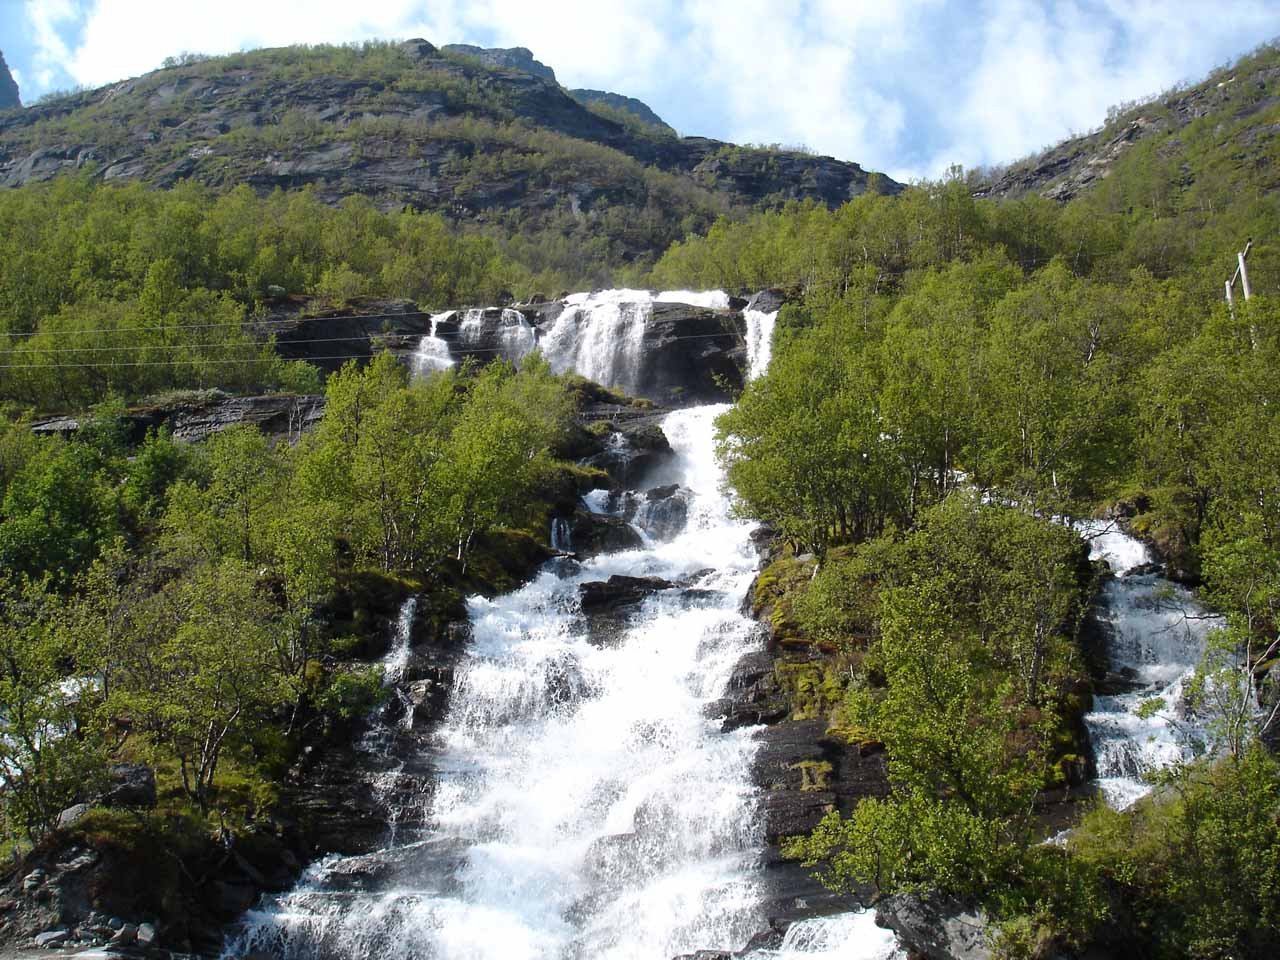 Now we were on the south side of Kåfjorden along the E6 and we got a closeup look at this waterfall though I'm not sure which stream it belonged to